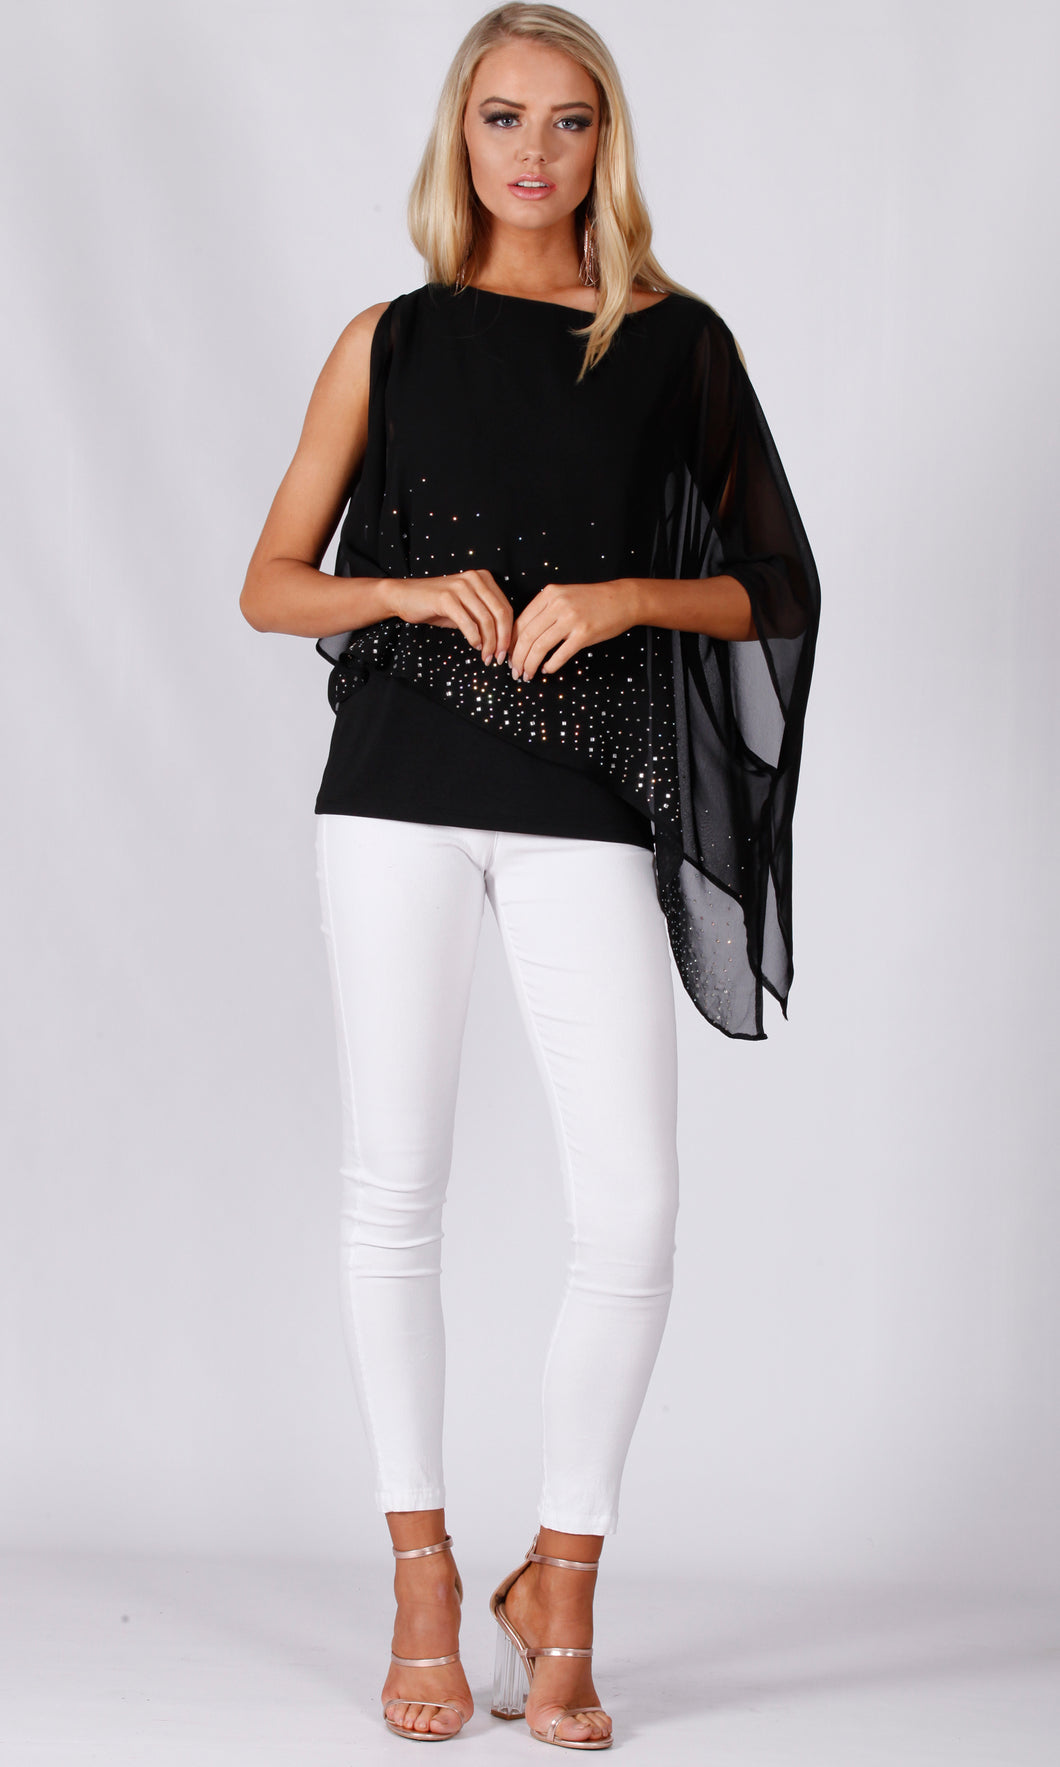 VS7290-1TB Diamonte Black Chiffon Layer Top (Pack)